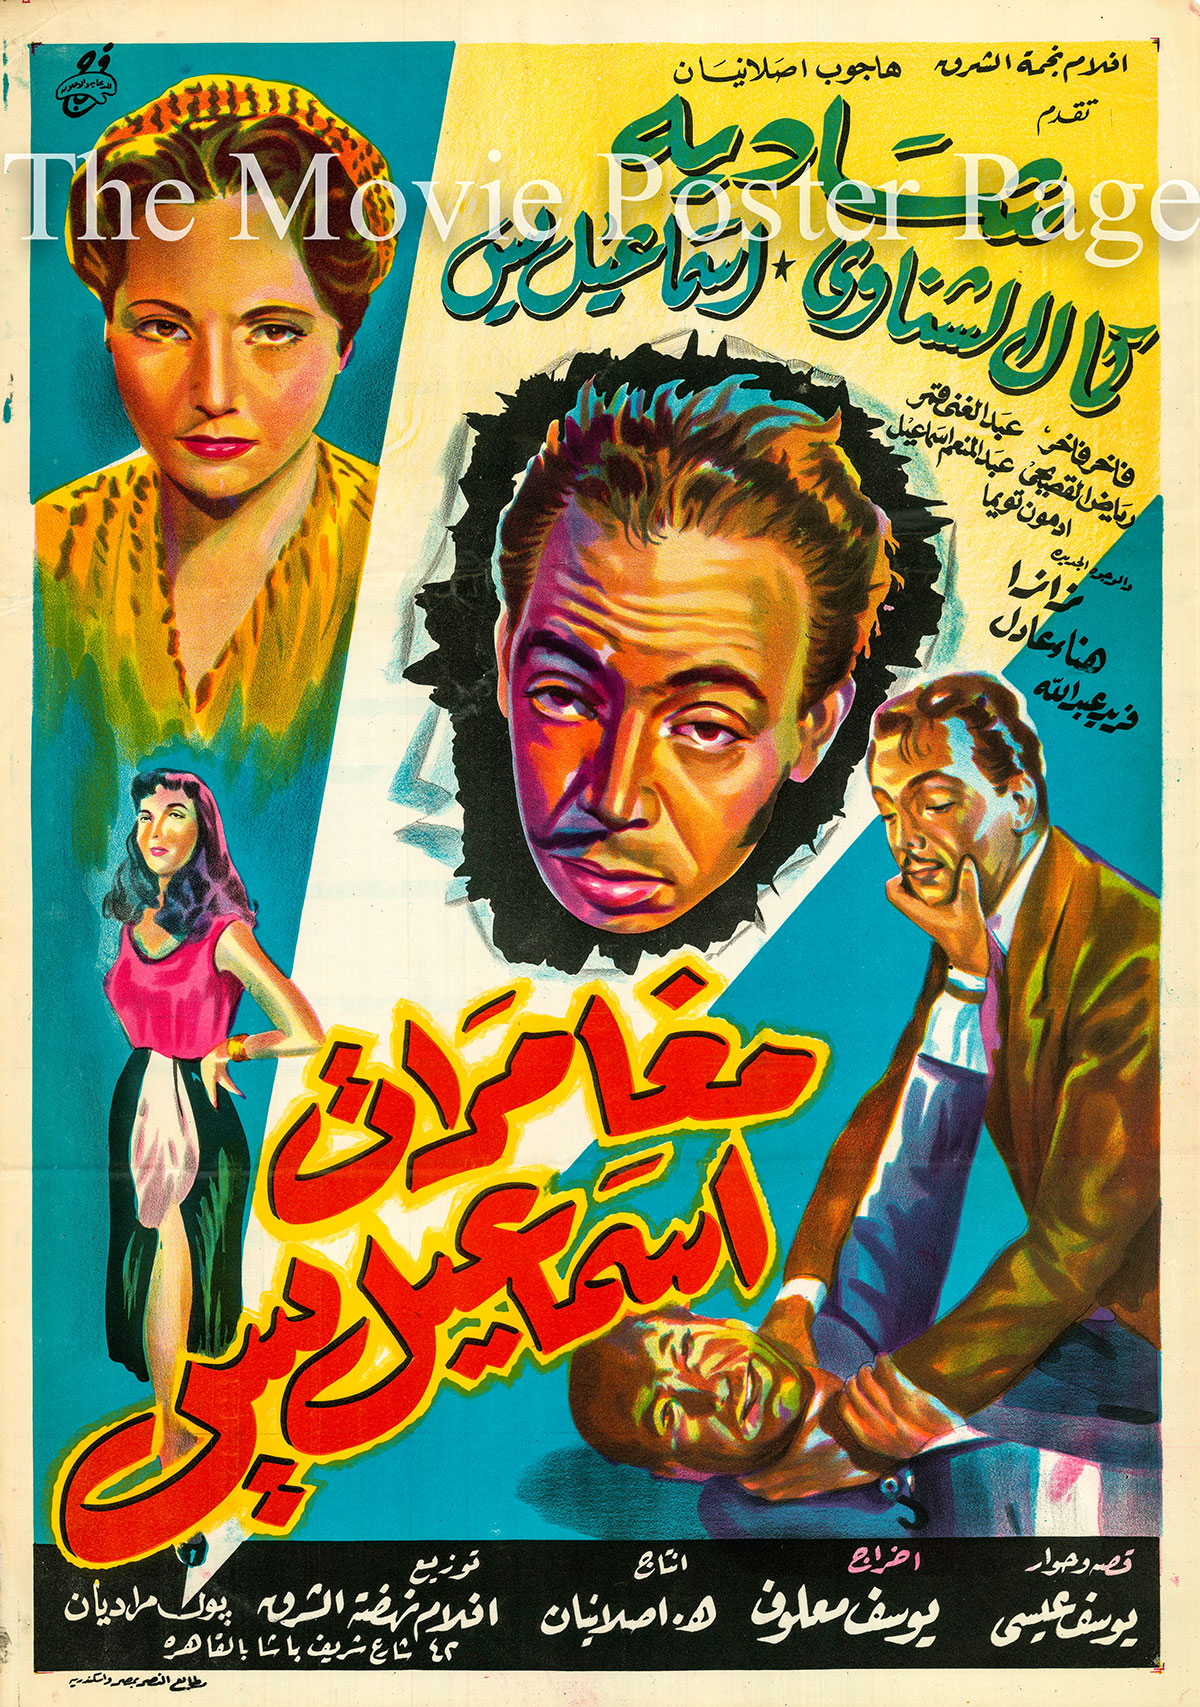 Pictured is an Egyptian promotional poster for the 1954 Youssef Maalouf film The Adventures of Ismail Yasseen starring Ismail Yasseen.